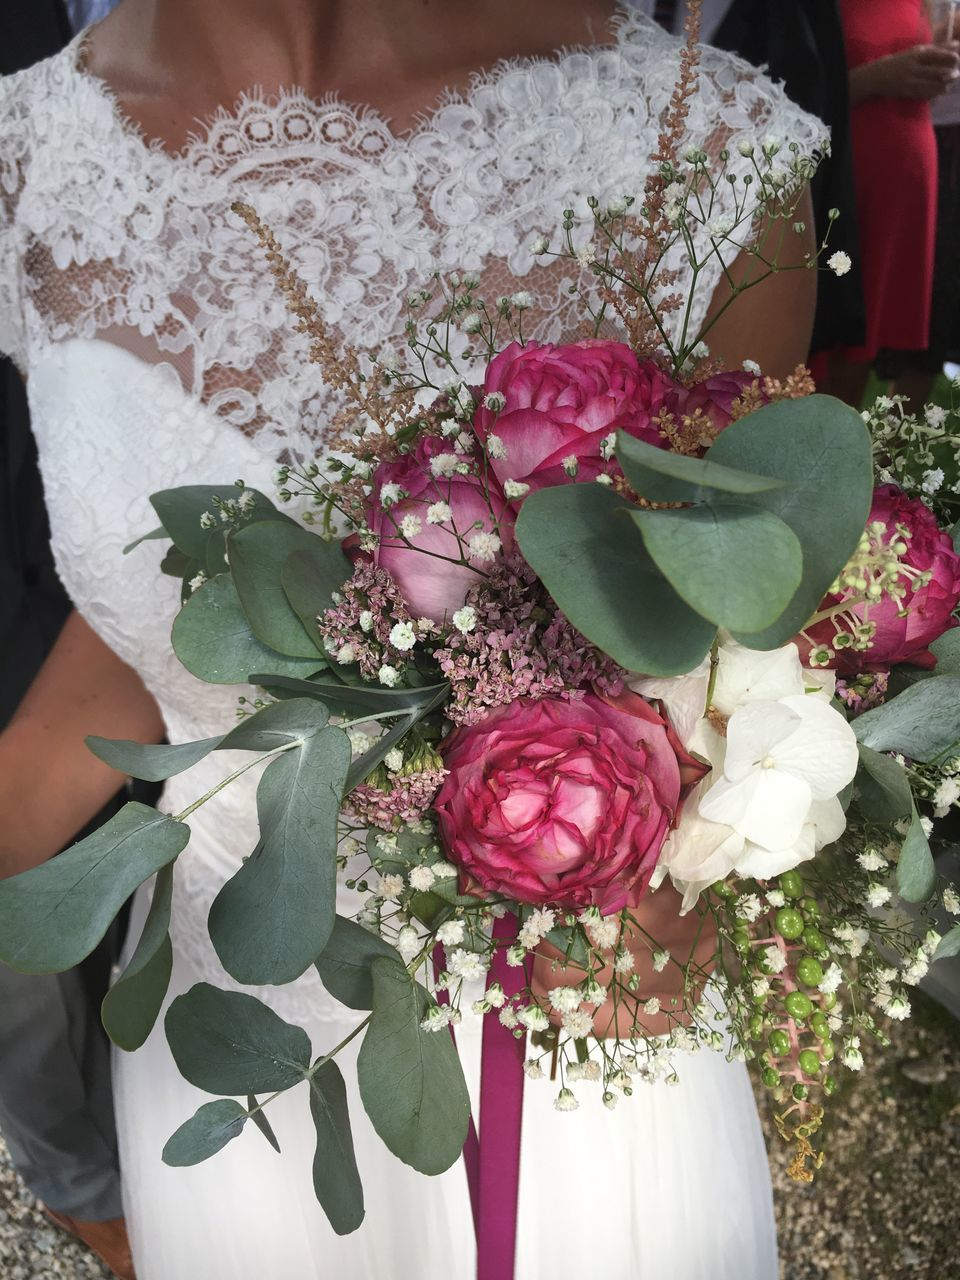 flower, bouquet, rose - flower, freshness, wedding, celebration, beauty in nature, fragility, bride, petal, flower head, nature, leaf, life events, outdoors, day, wedding dress, real people, close-up, women, one person, florist, people